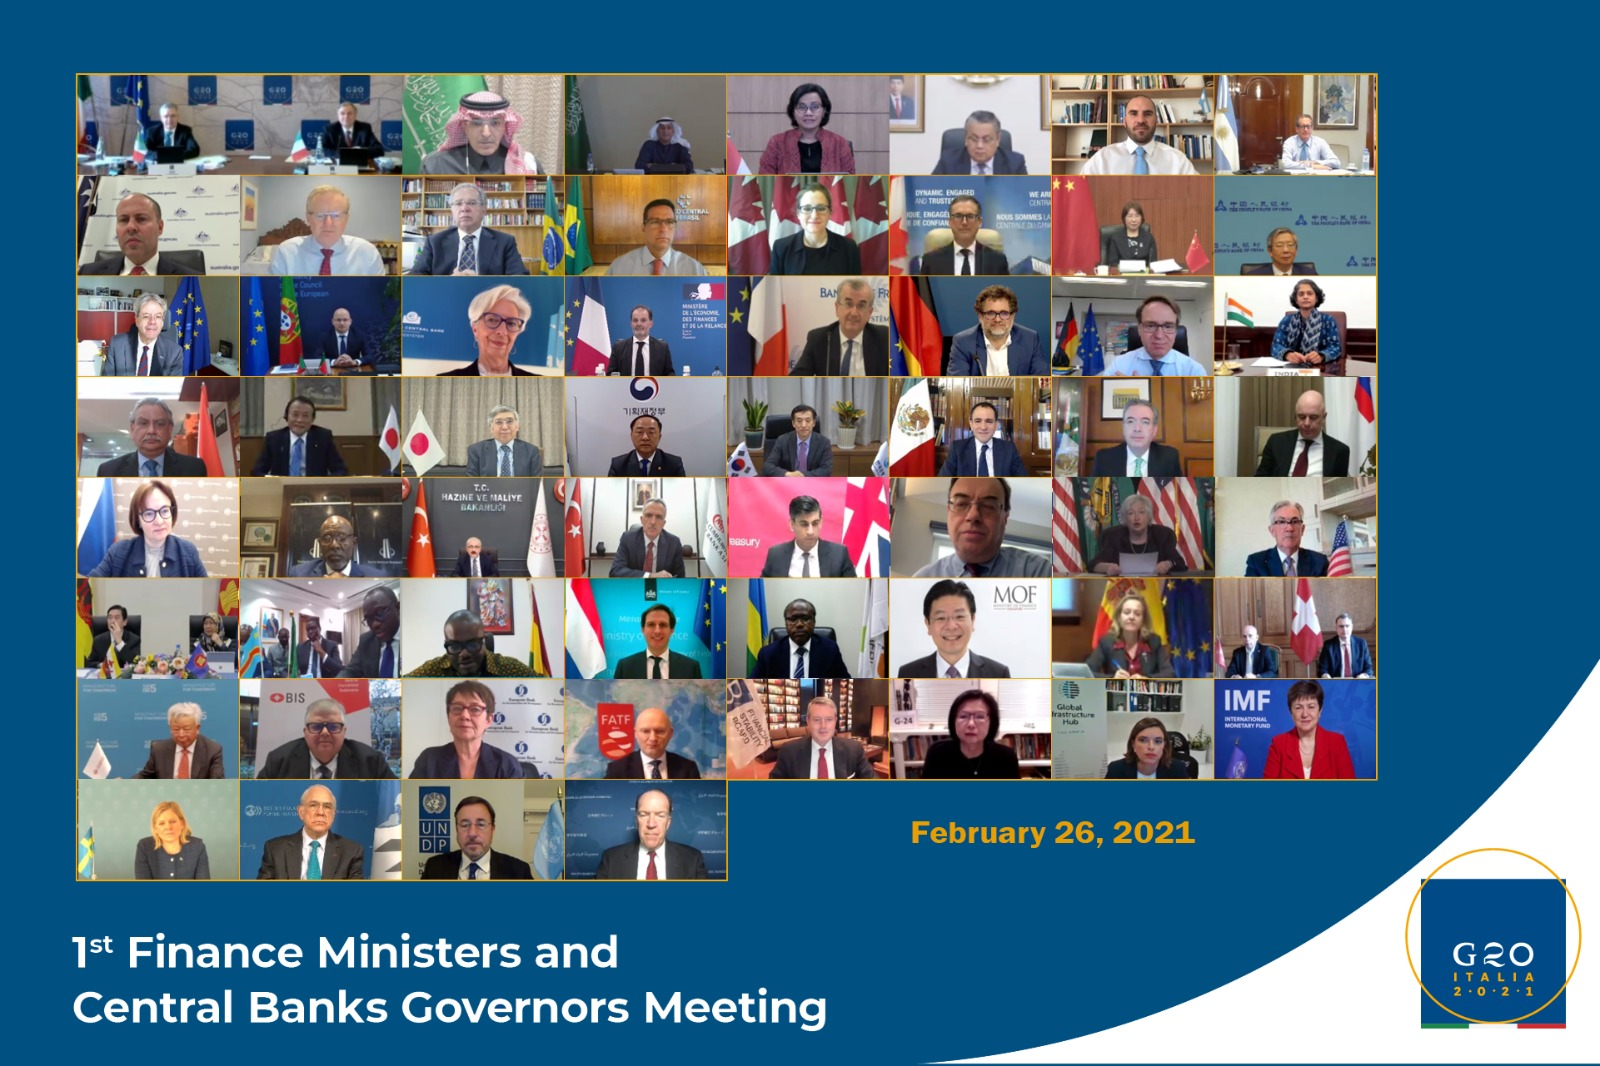 First G20 Finance Ministers and Central Bank Governors Meeting 26 February 2021